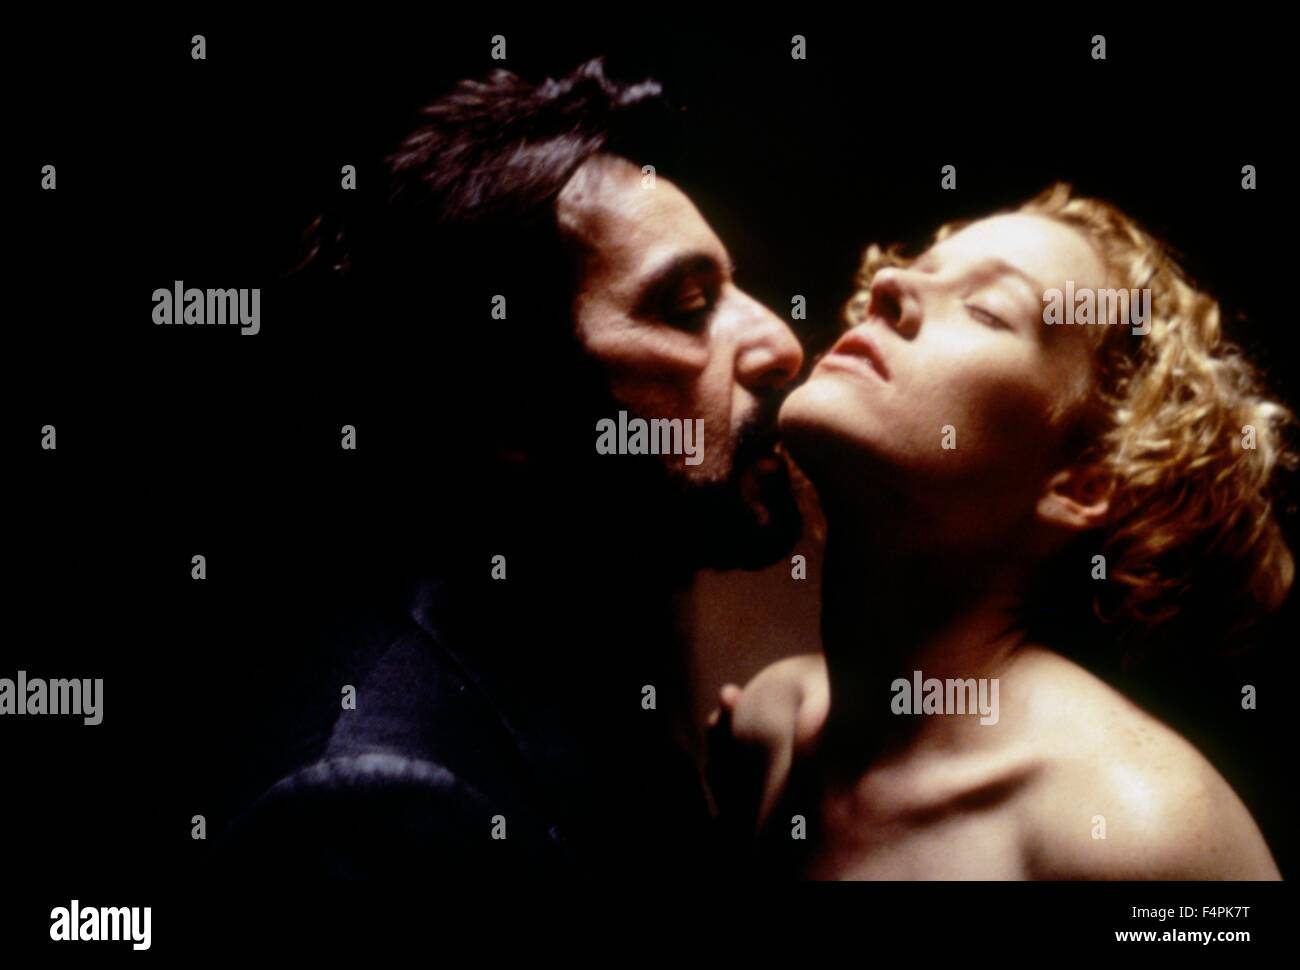 Al Pacino and Penelope Ann Miller / Carlito's Way / 1993 directed by Brian De Palma [Universal Pictures] - Stock Image